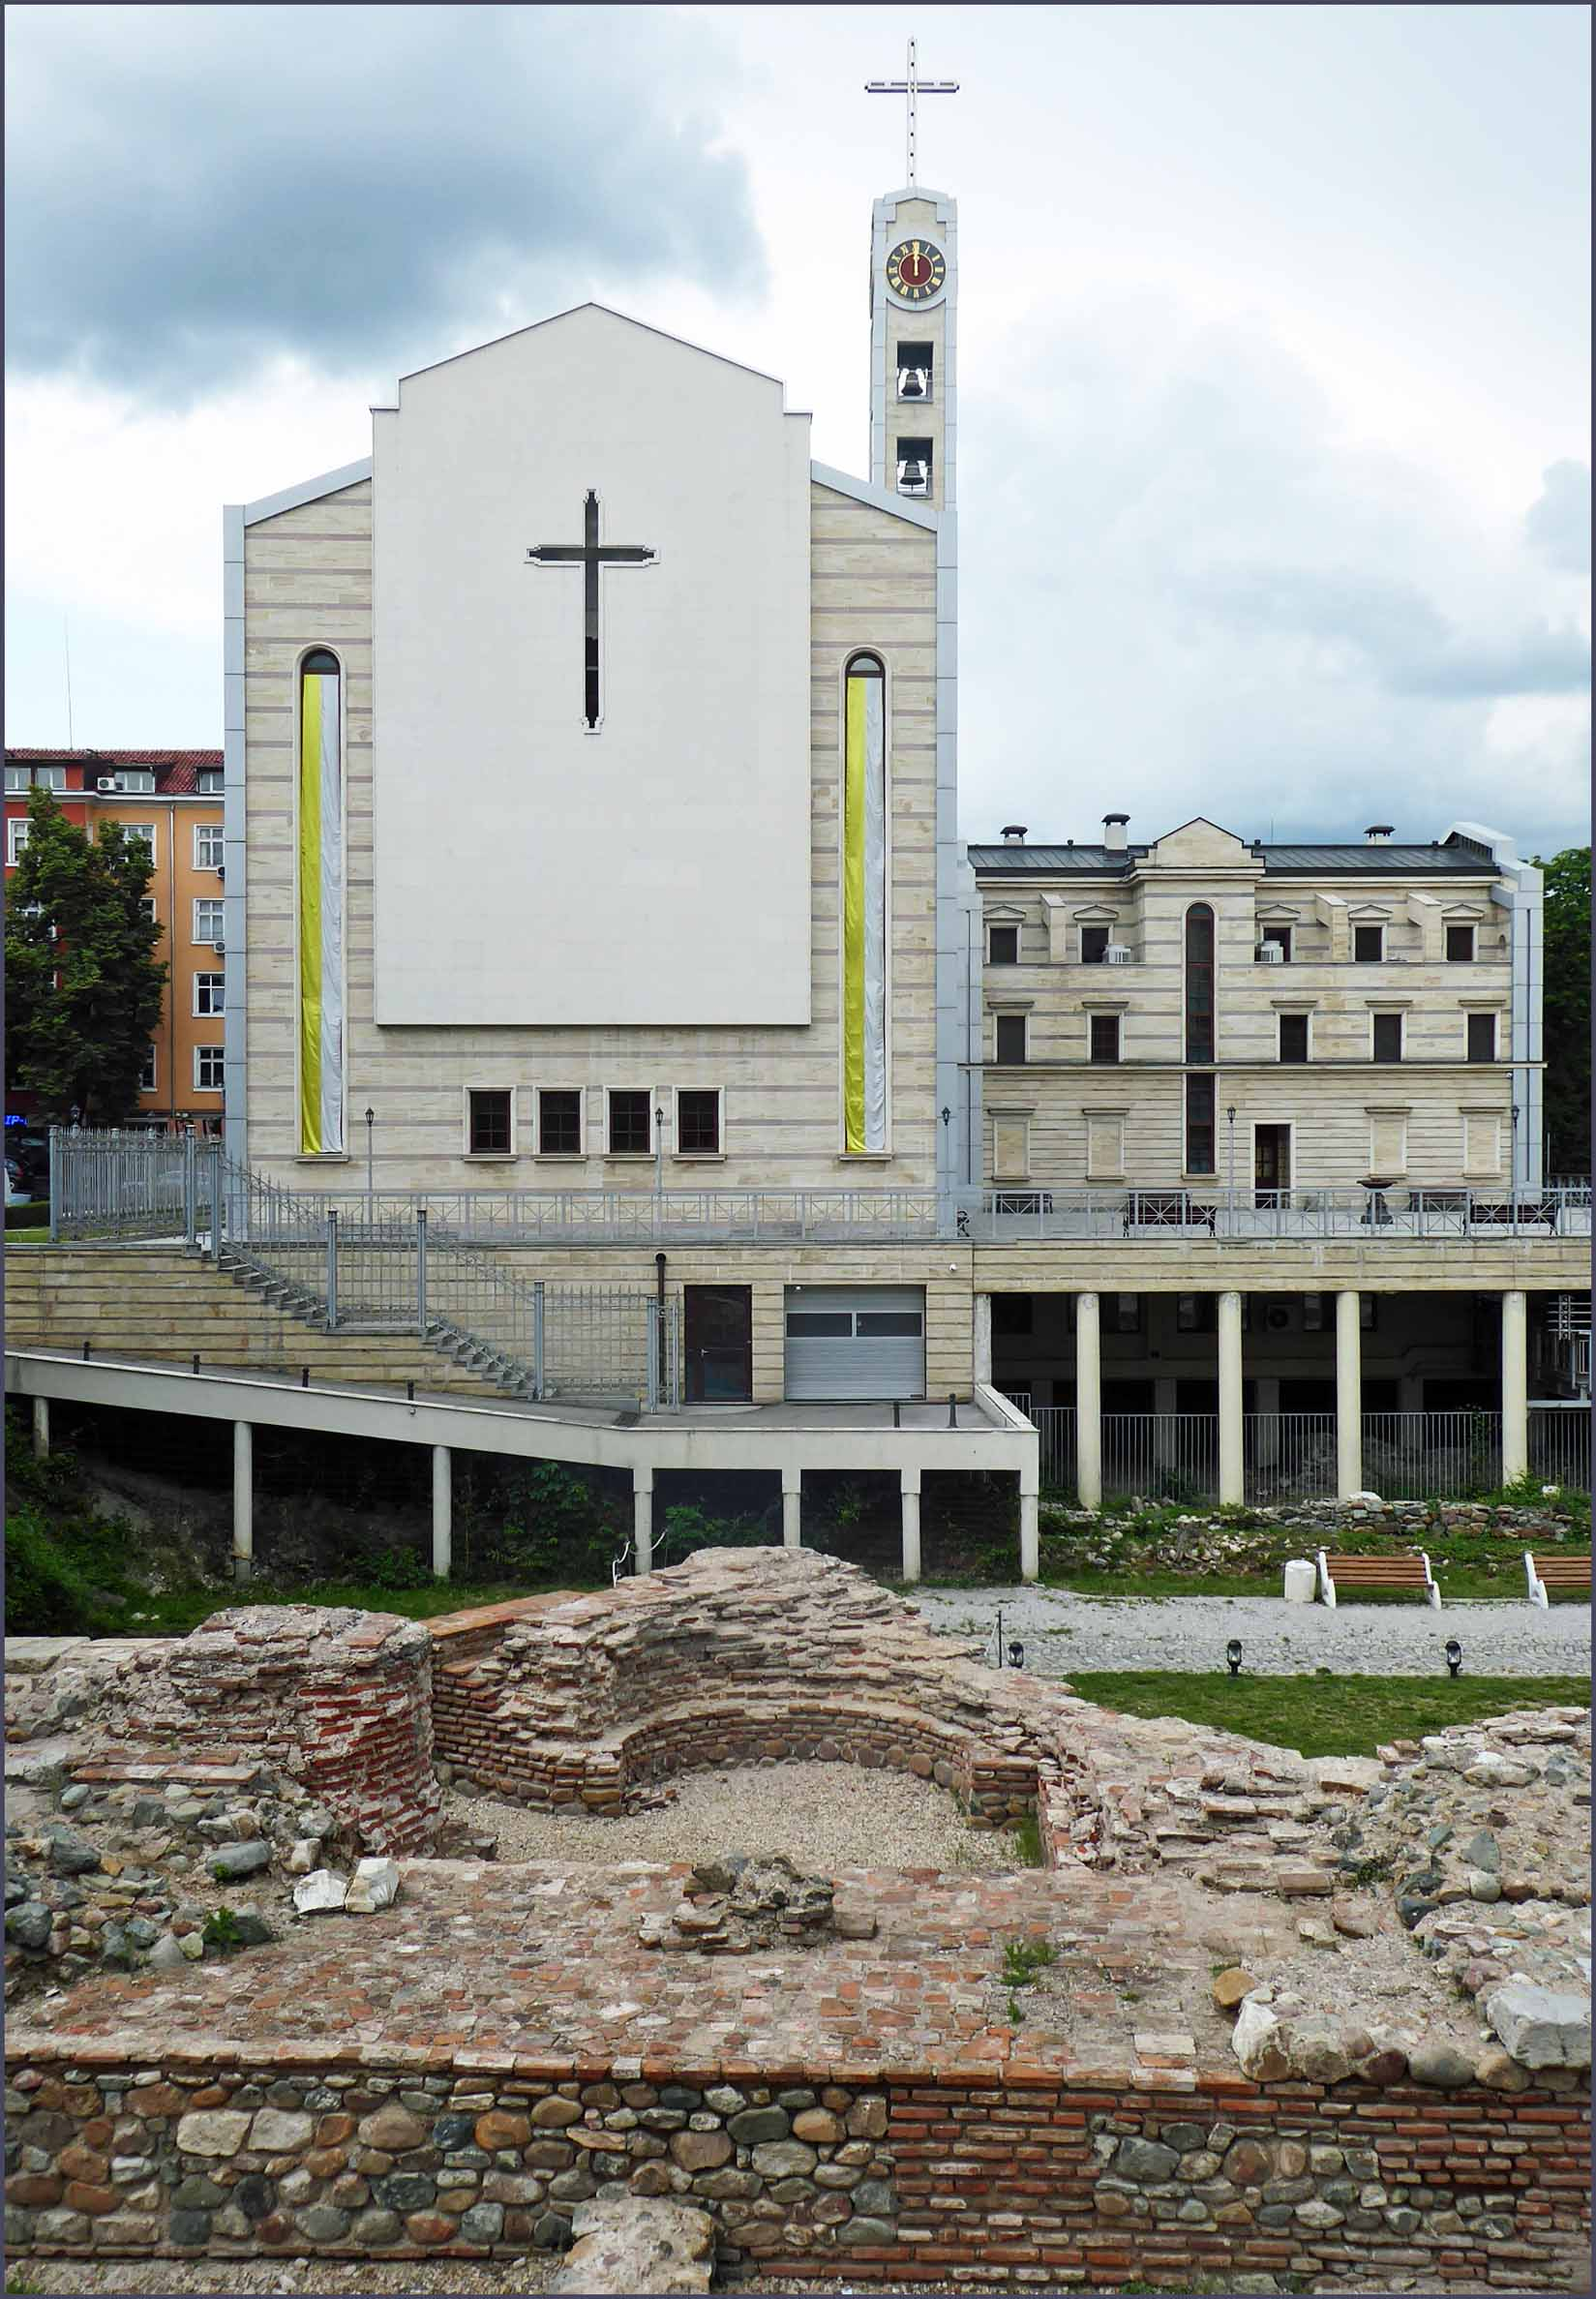 Modern cathedral with brick foundations in front